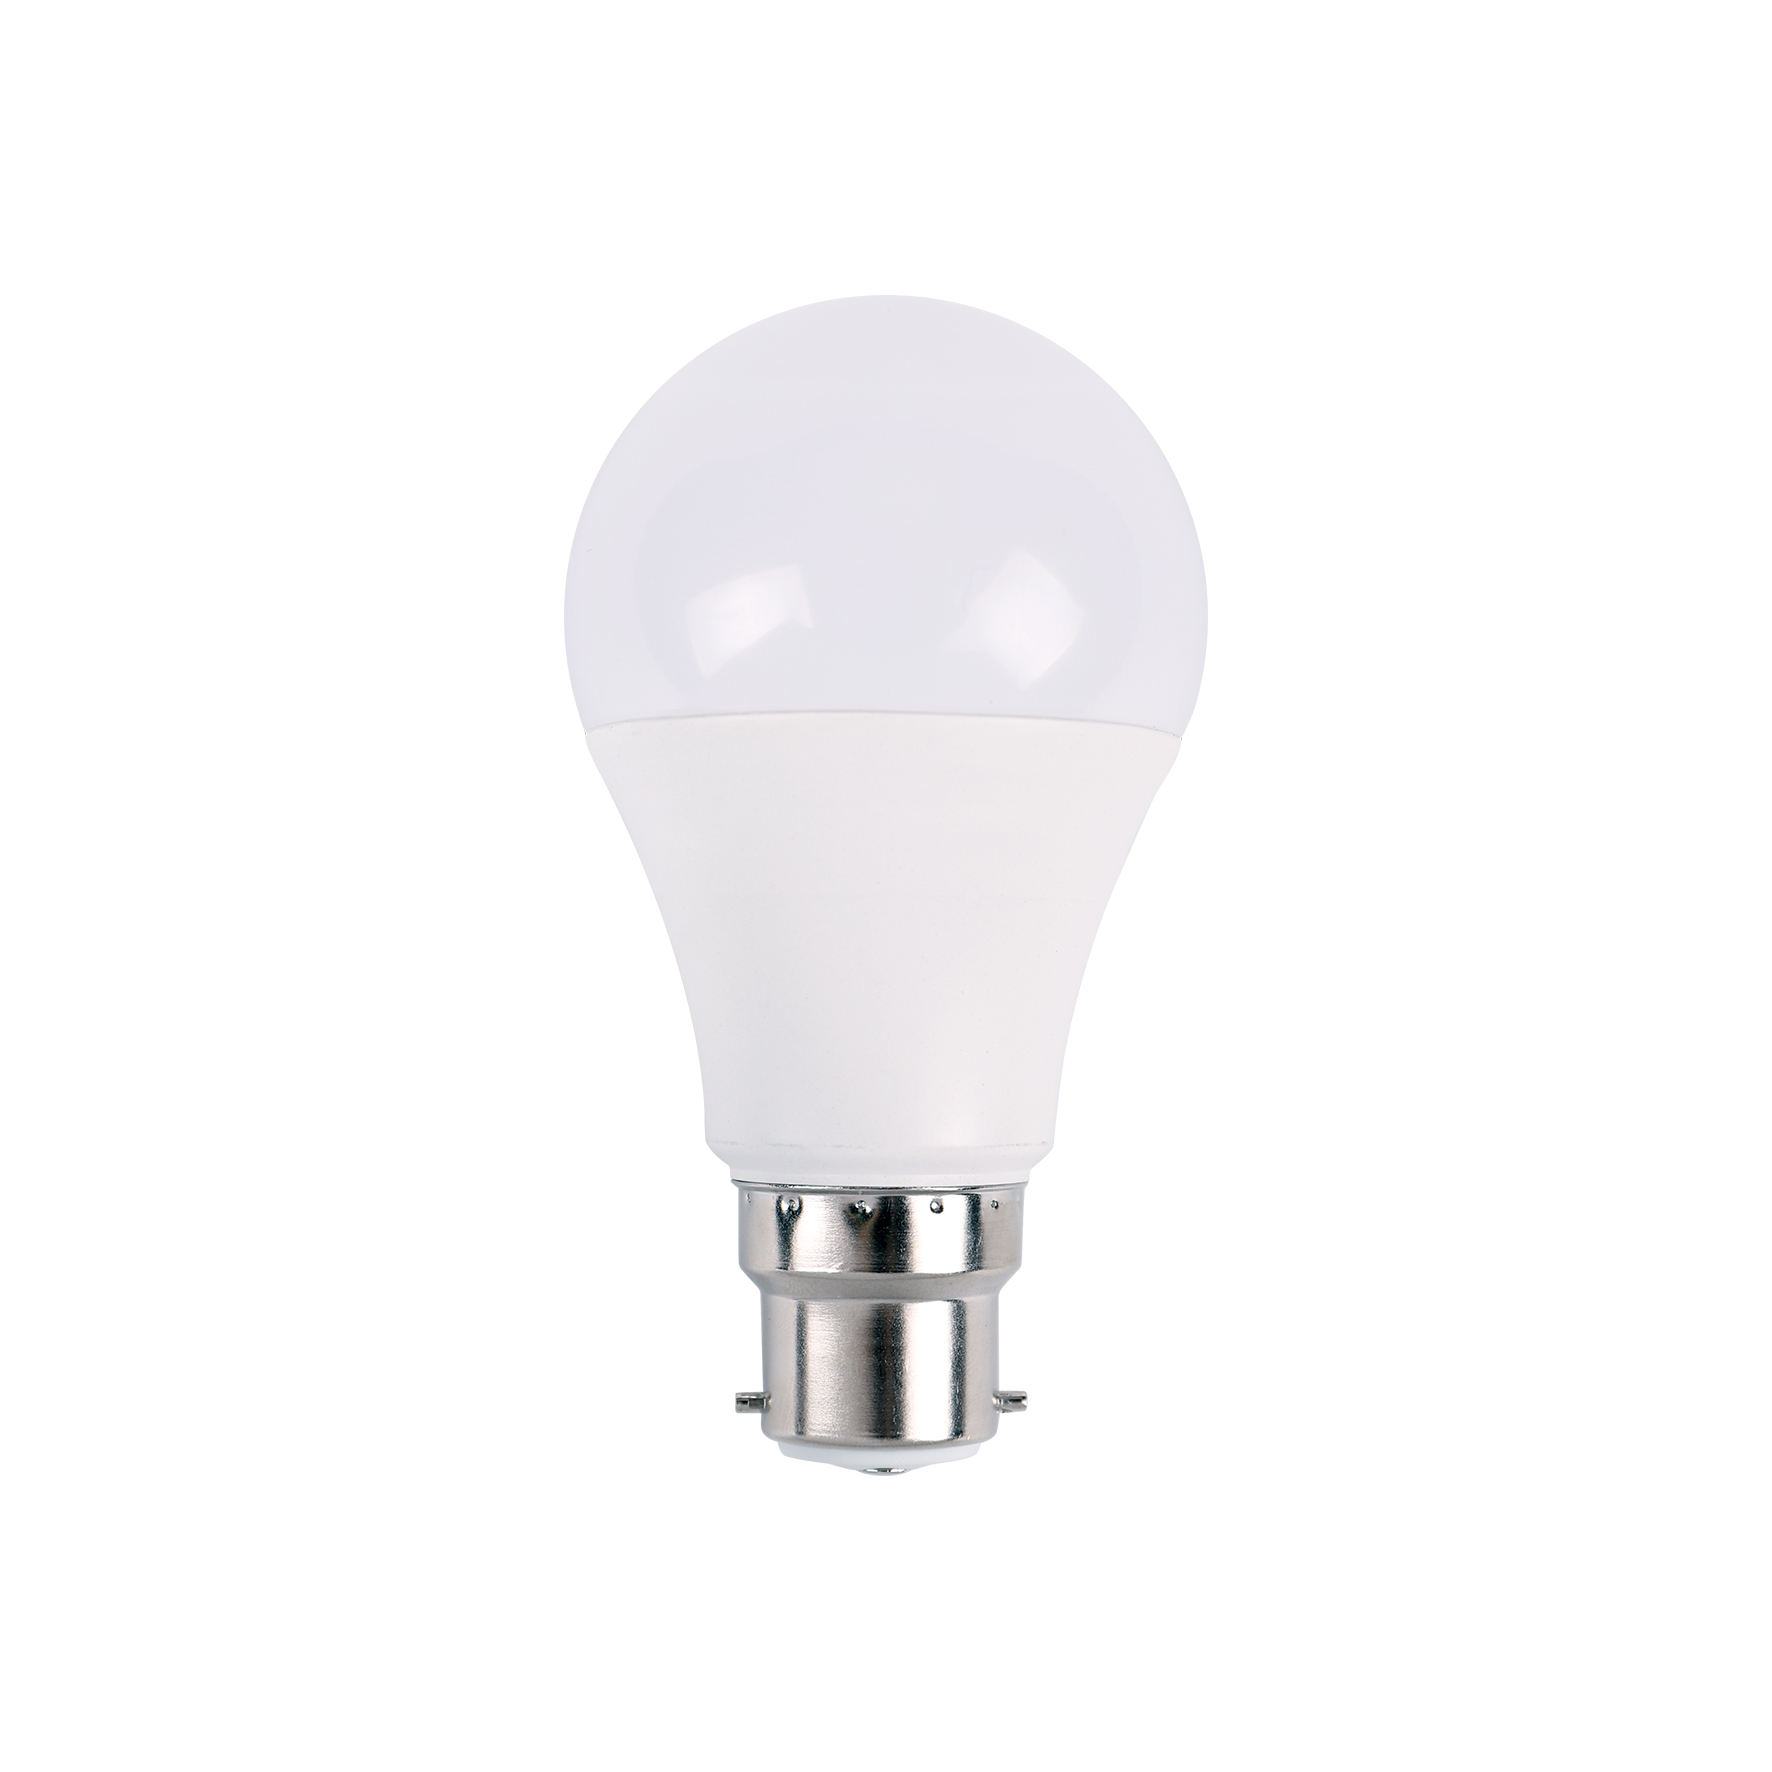 E26 E27 B22 220V 3w 5w 7w 9w 12 watt a60 led lamp